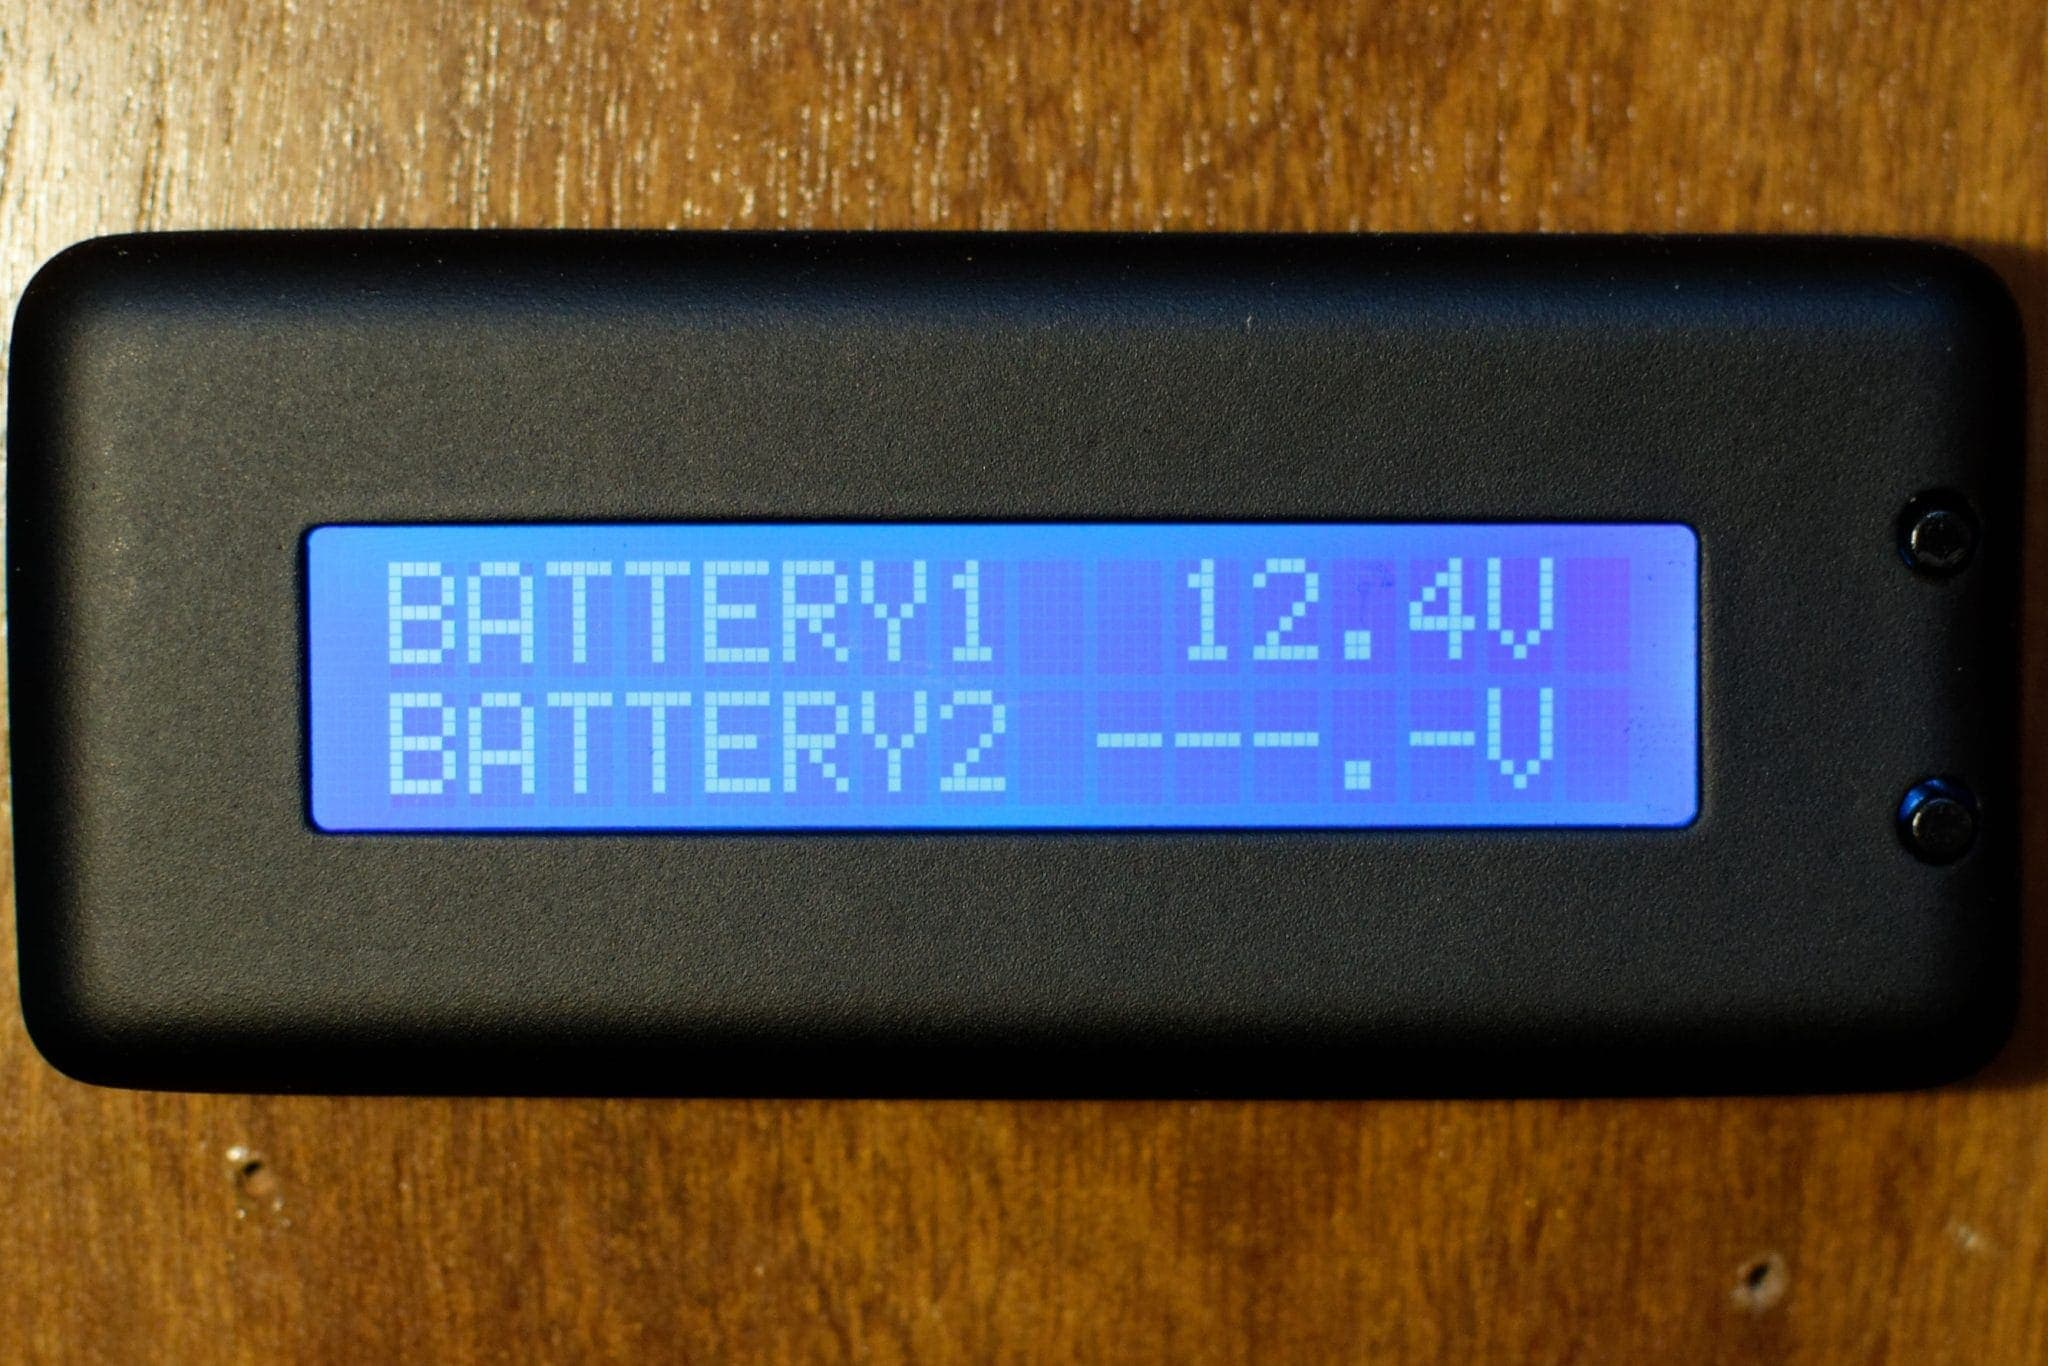 Battery page